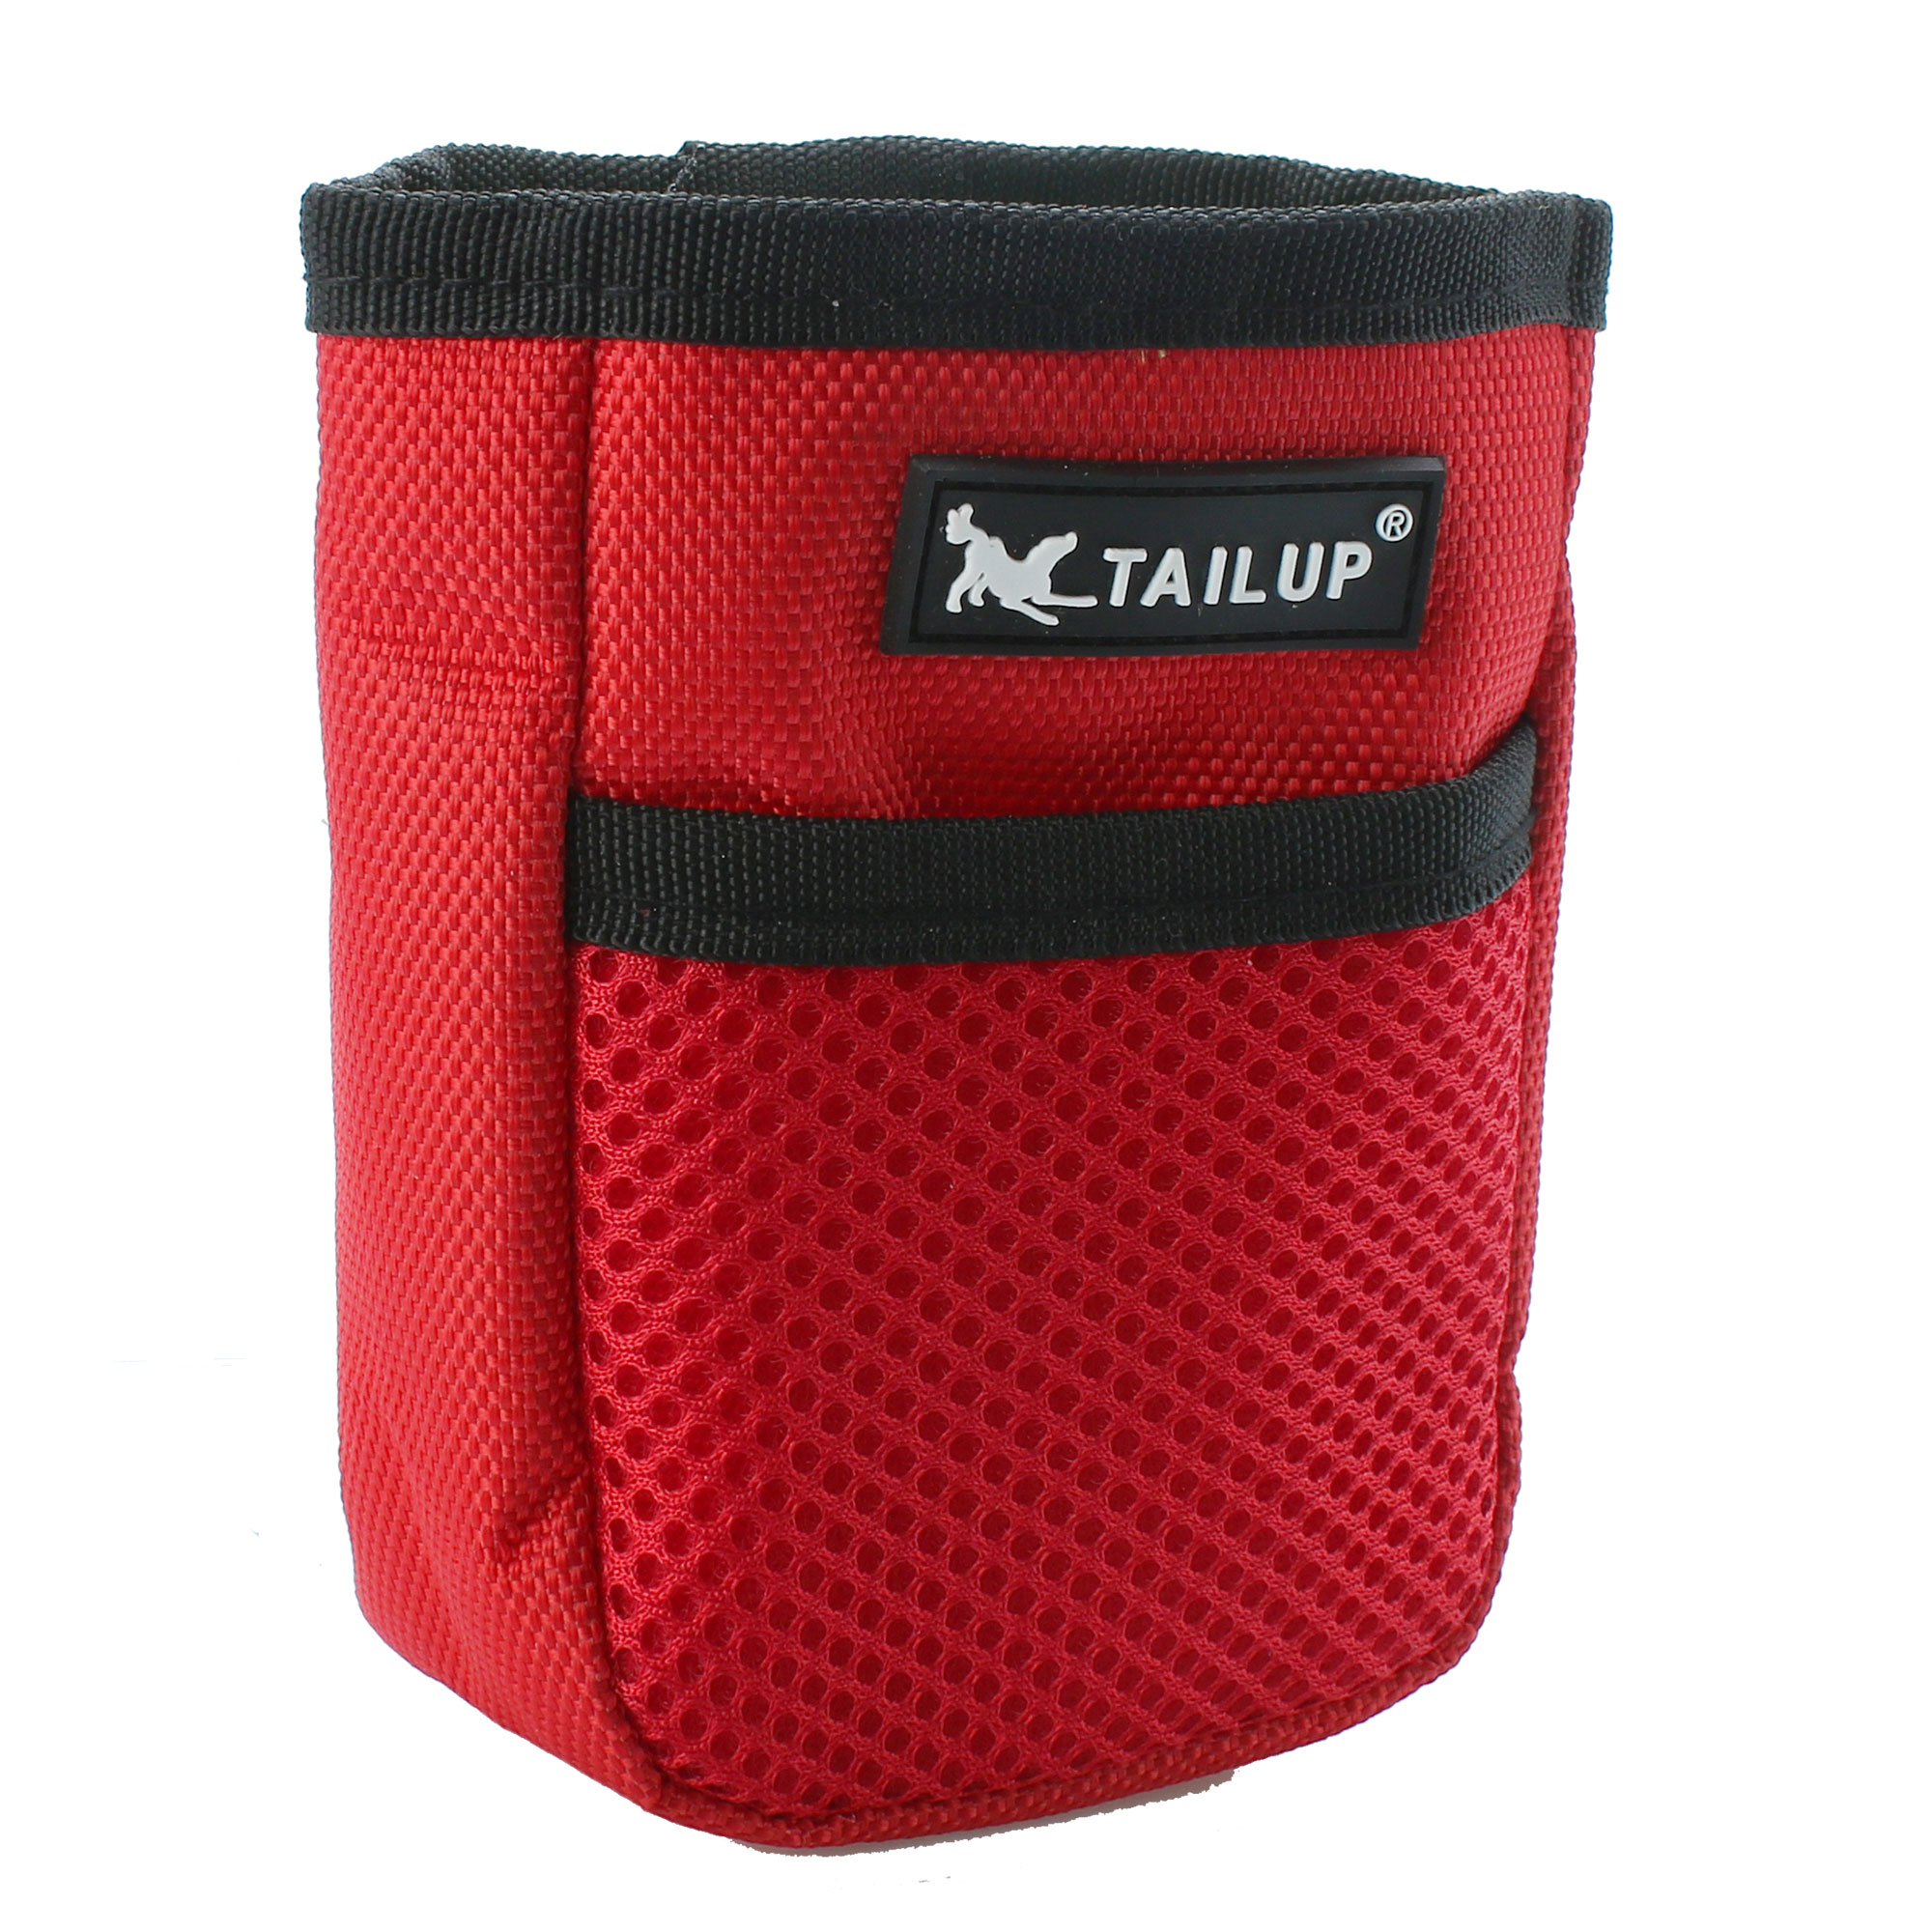 TAILUP Authorized Dog Treat Pouch Training Bag Pet Accessory Holder Red